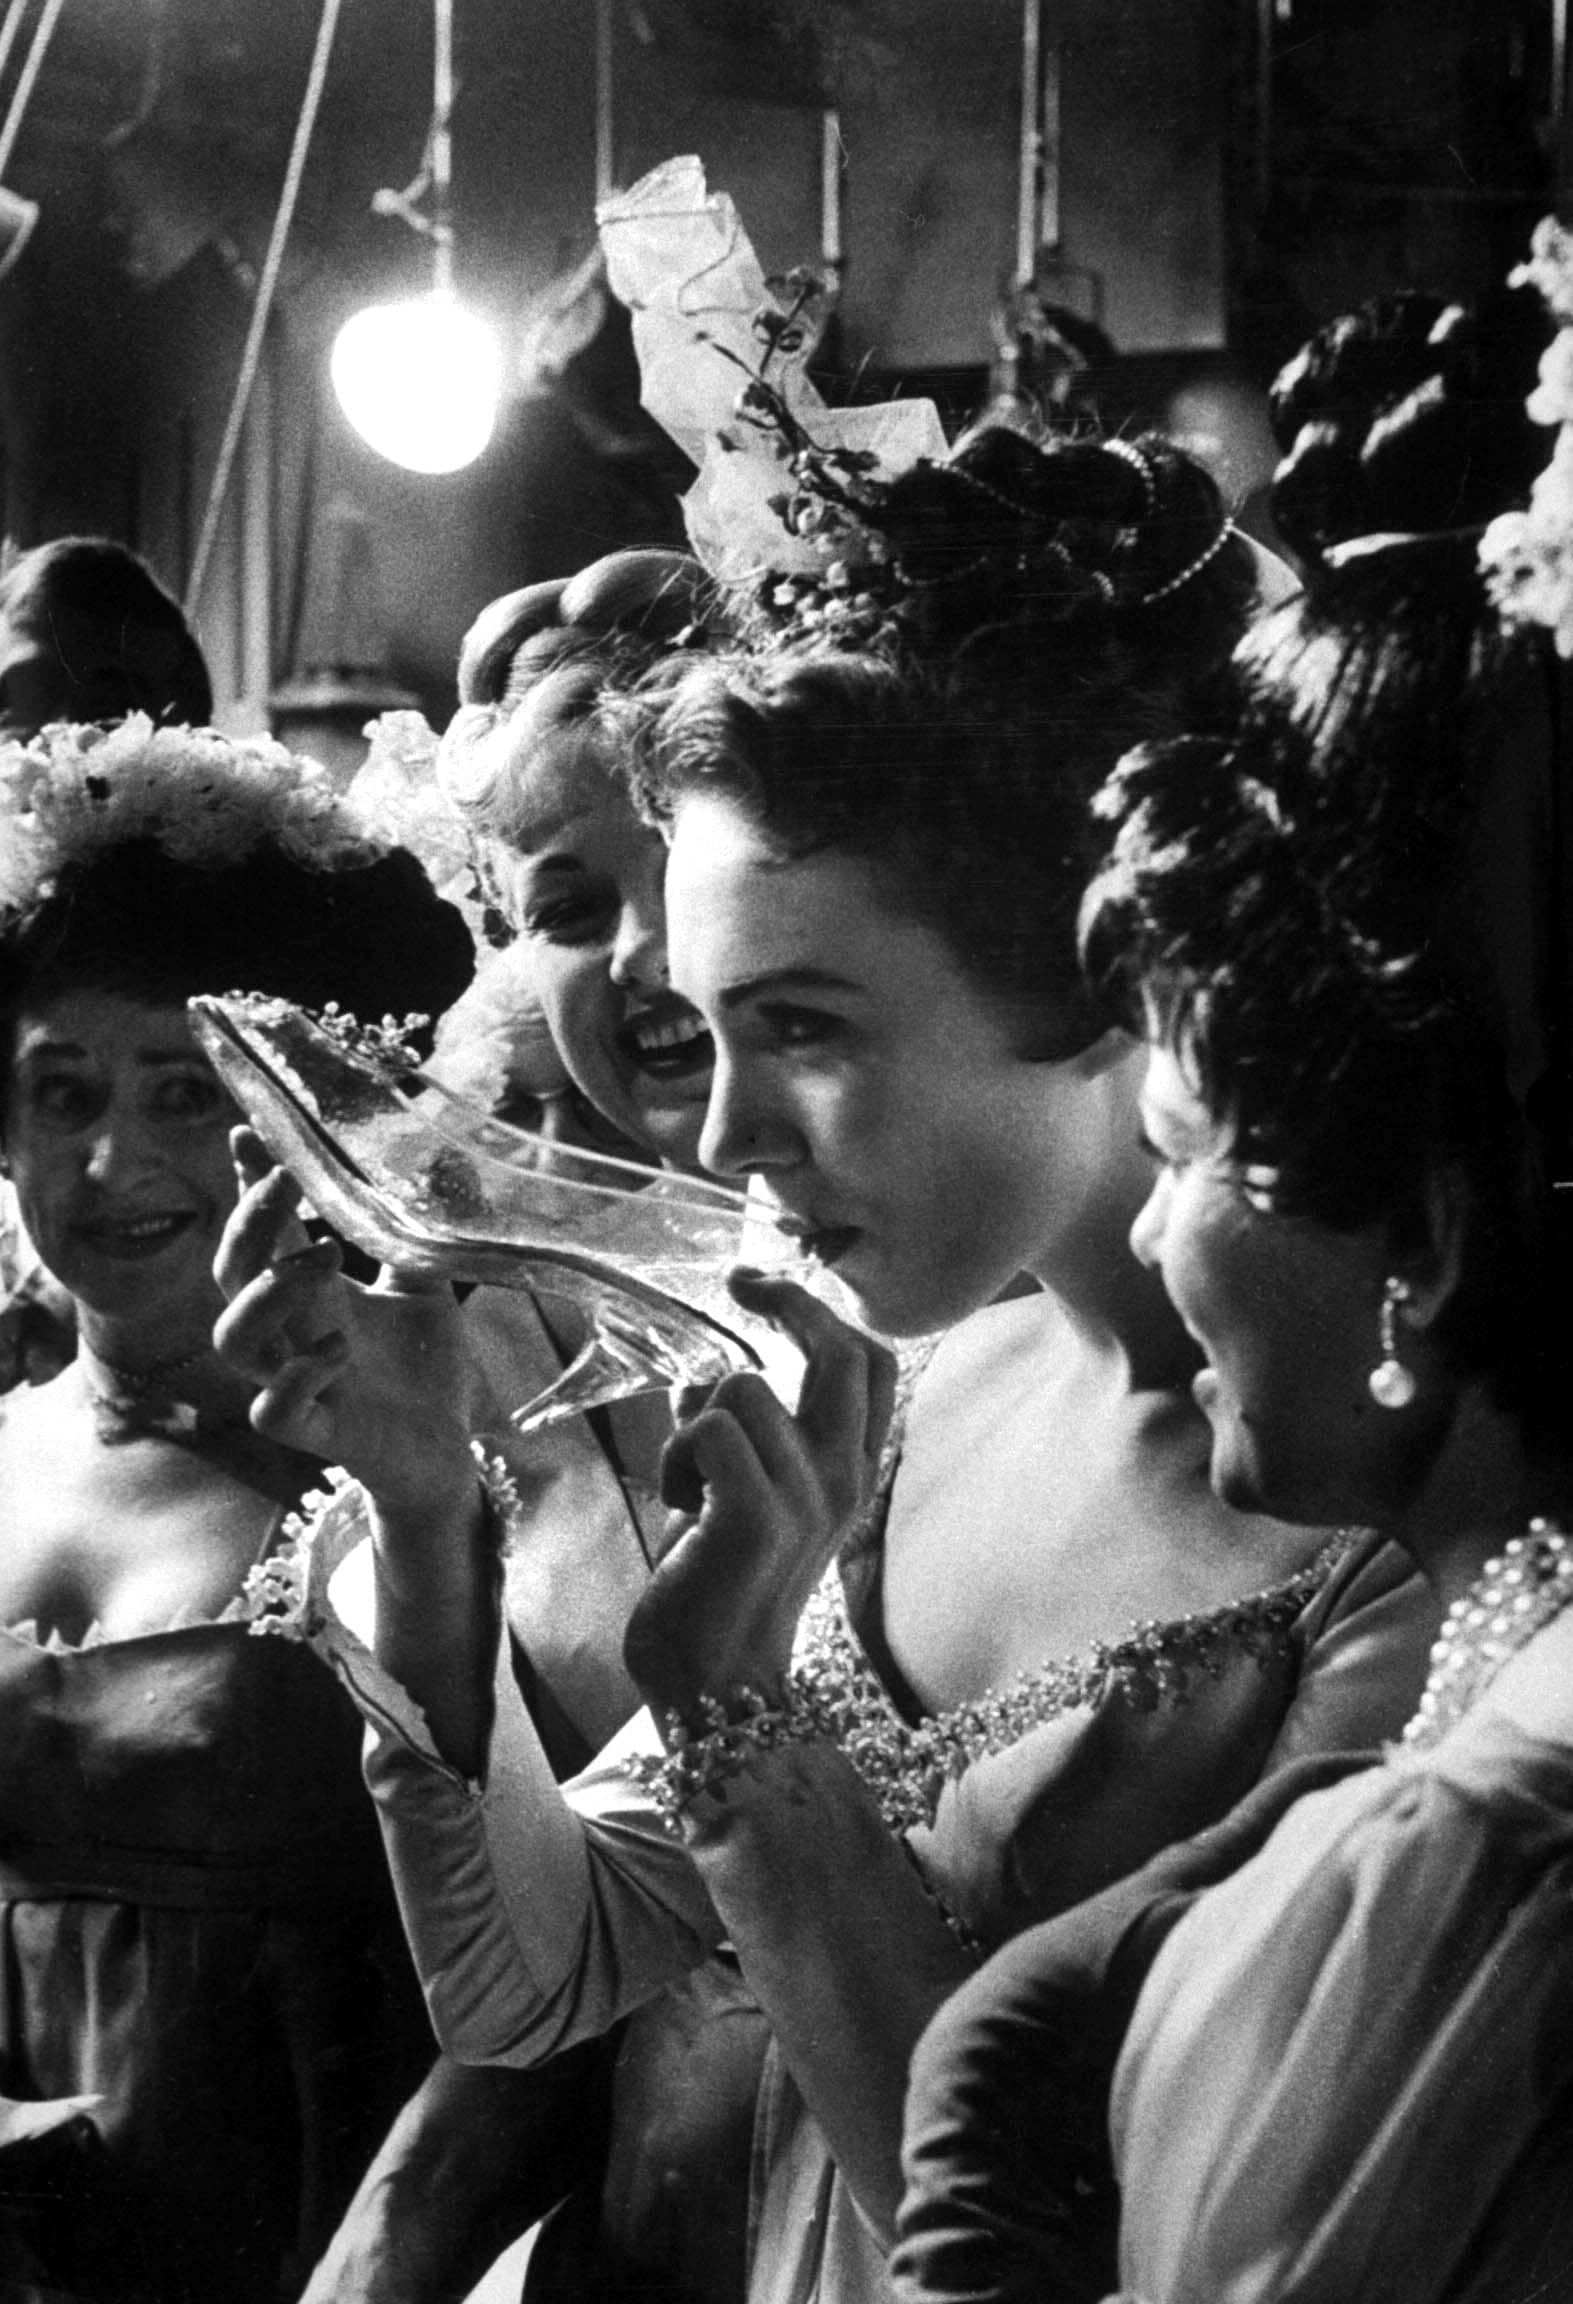 <b>Caption from LIFE.</b> After the show Julie Andrews drinks toast to the rest of the cast from her glass slipper